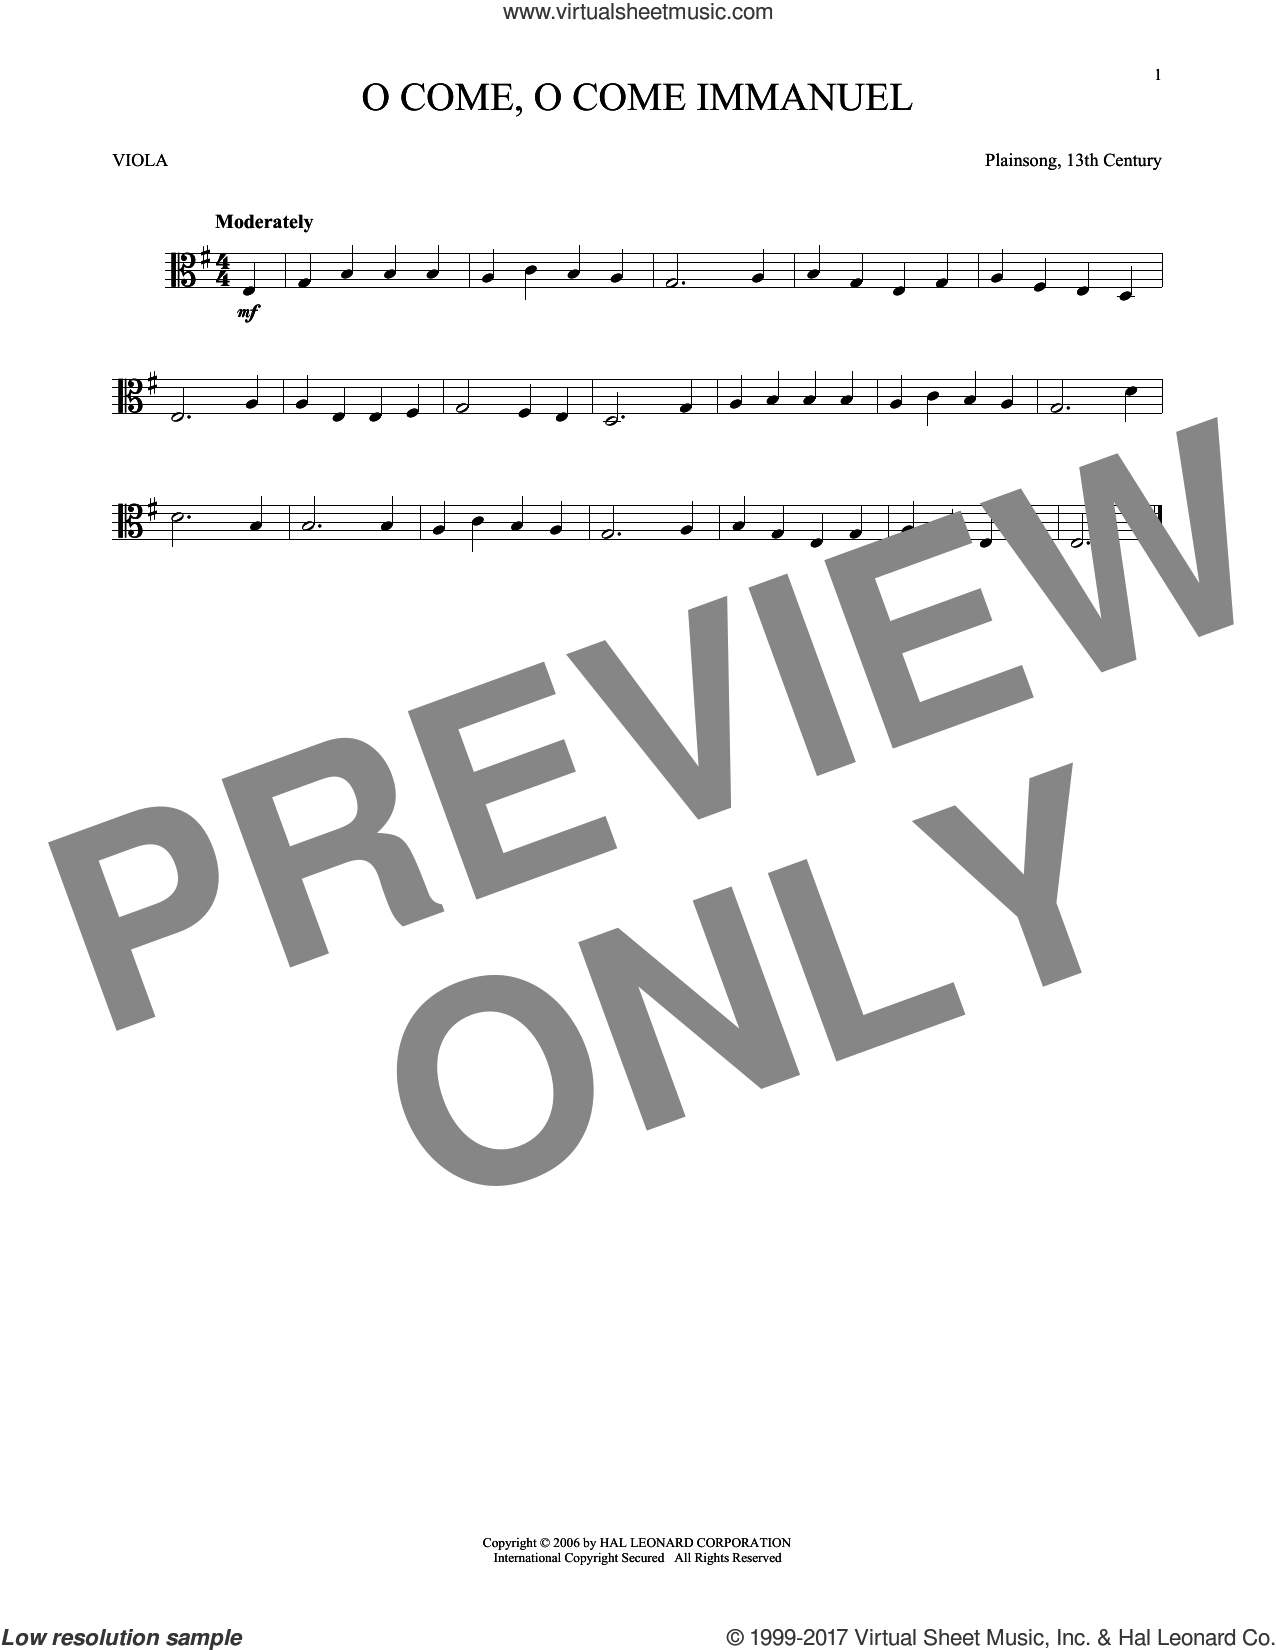 O Come, O Come Immanuel sheet music for viola solo by Plainsong, 13th Century, Henry S. Coffin (trans.) and John M. Neale (trans), intermediate skill level